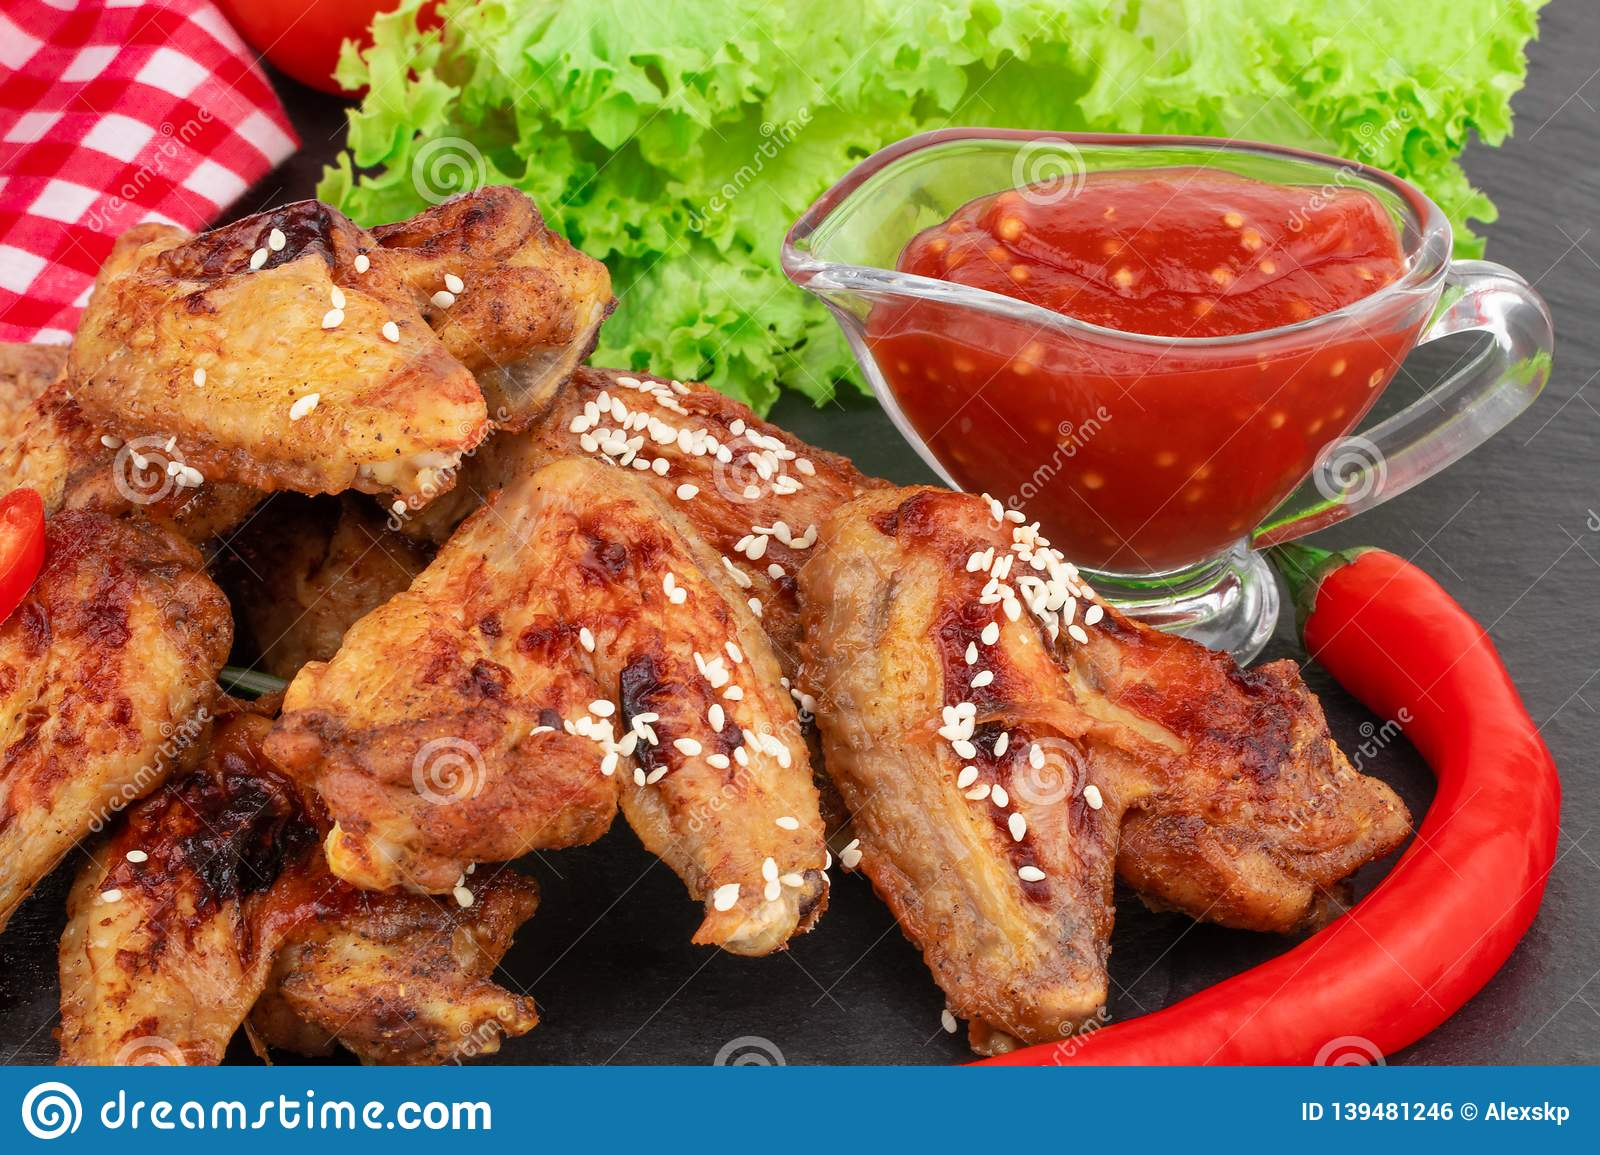 Baked chicken wings with sesame seeds and sweet chili sauce on dark background